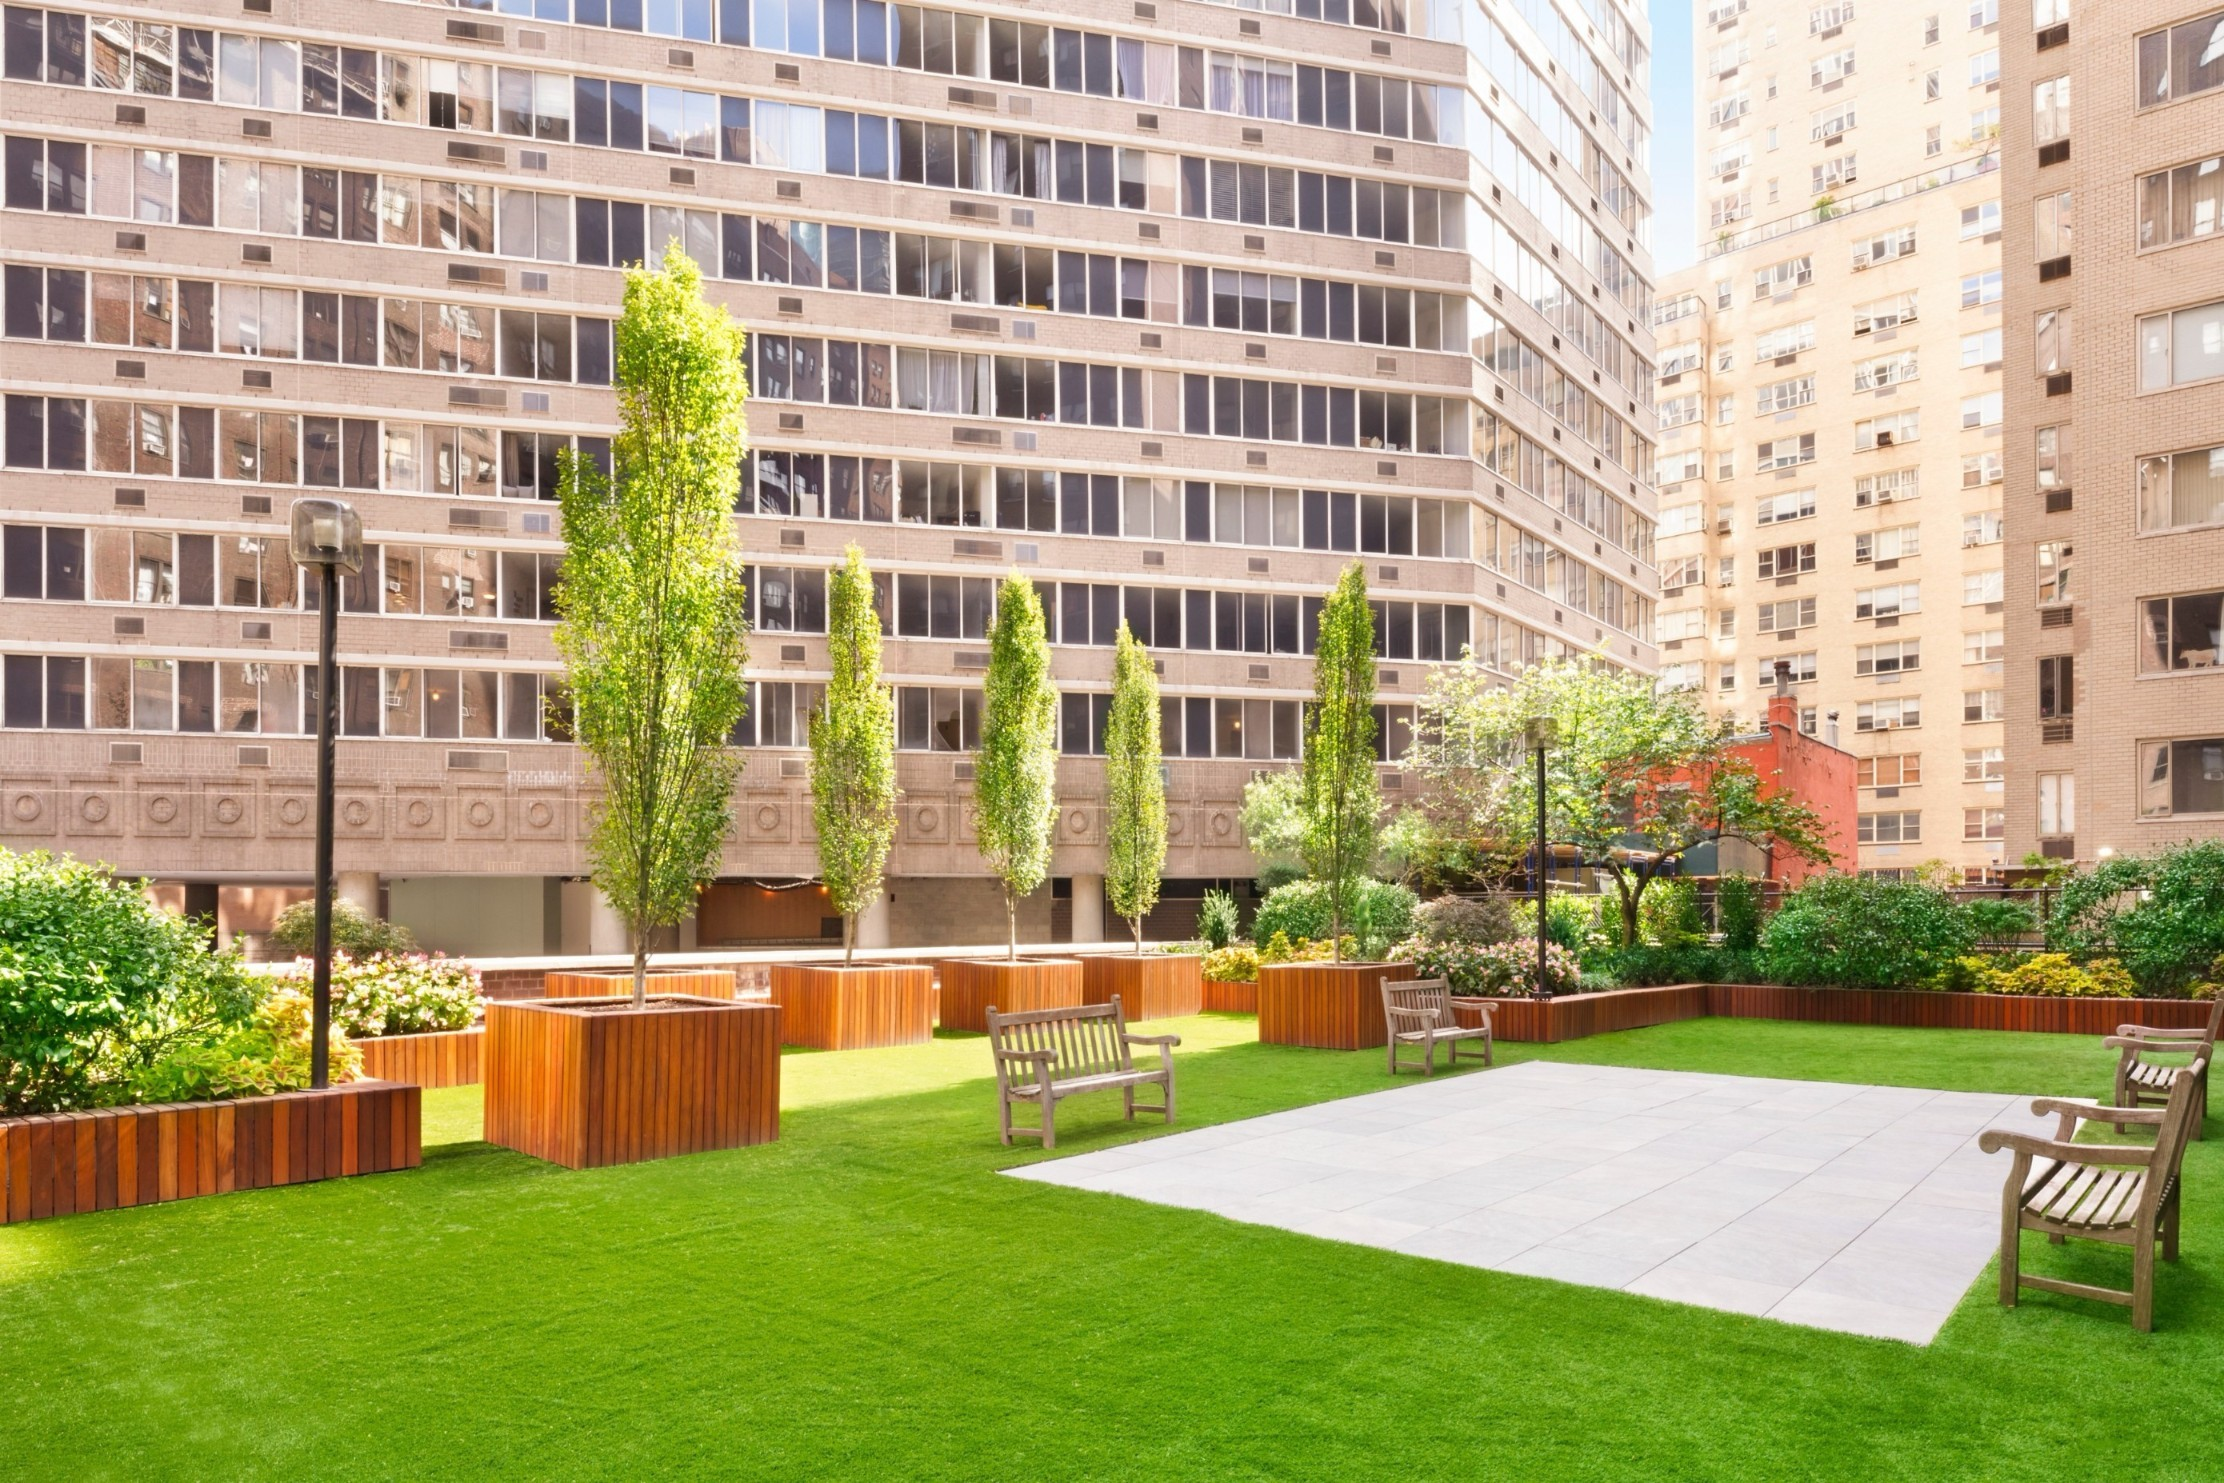 Apartment for sale at 400 East 54th Street, Apt 24H